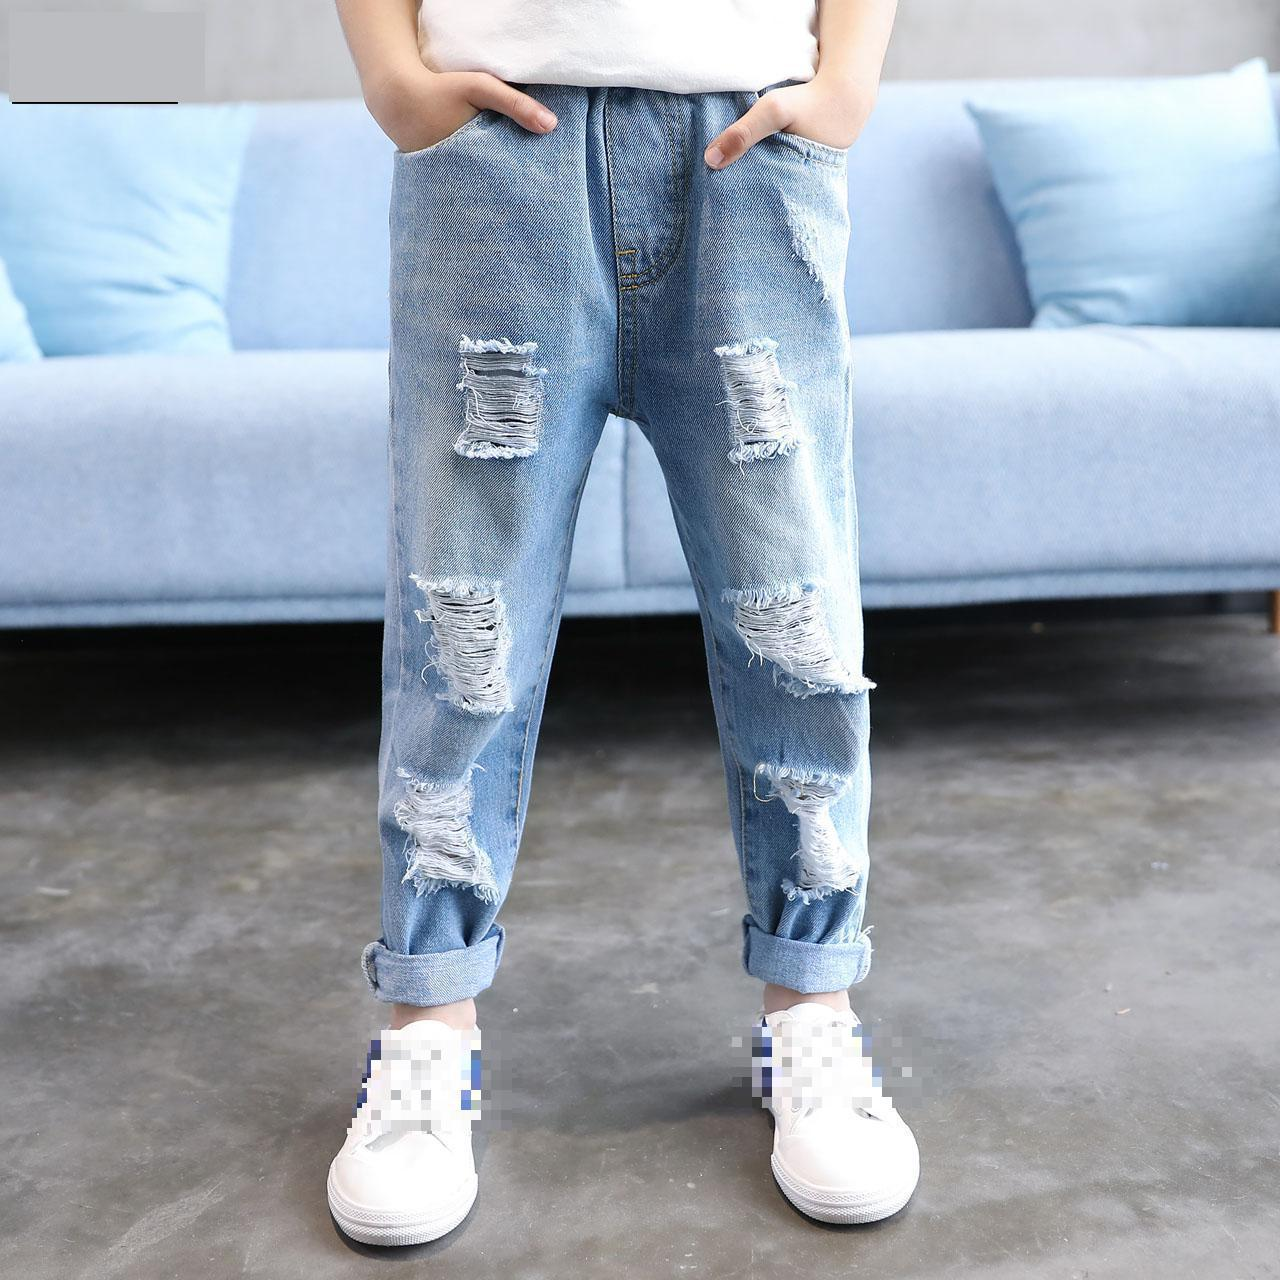 Children Broken Hole Pants 2017 Spring Jeans For Boy 4 5 6 7 8 9 10 11 12 13 Years Kids Ripped Jeans Baby Boy Soild Denim Pants new 2017 spring long length baby girls jeans pants fashion kids loose ripped jeans pants for children hole denim trousers